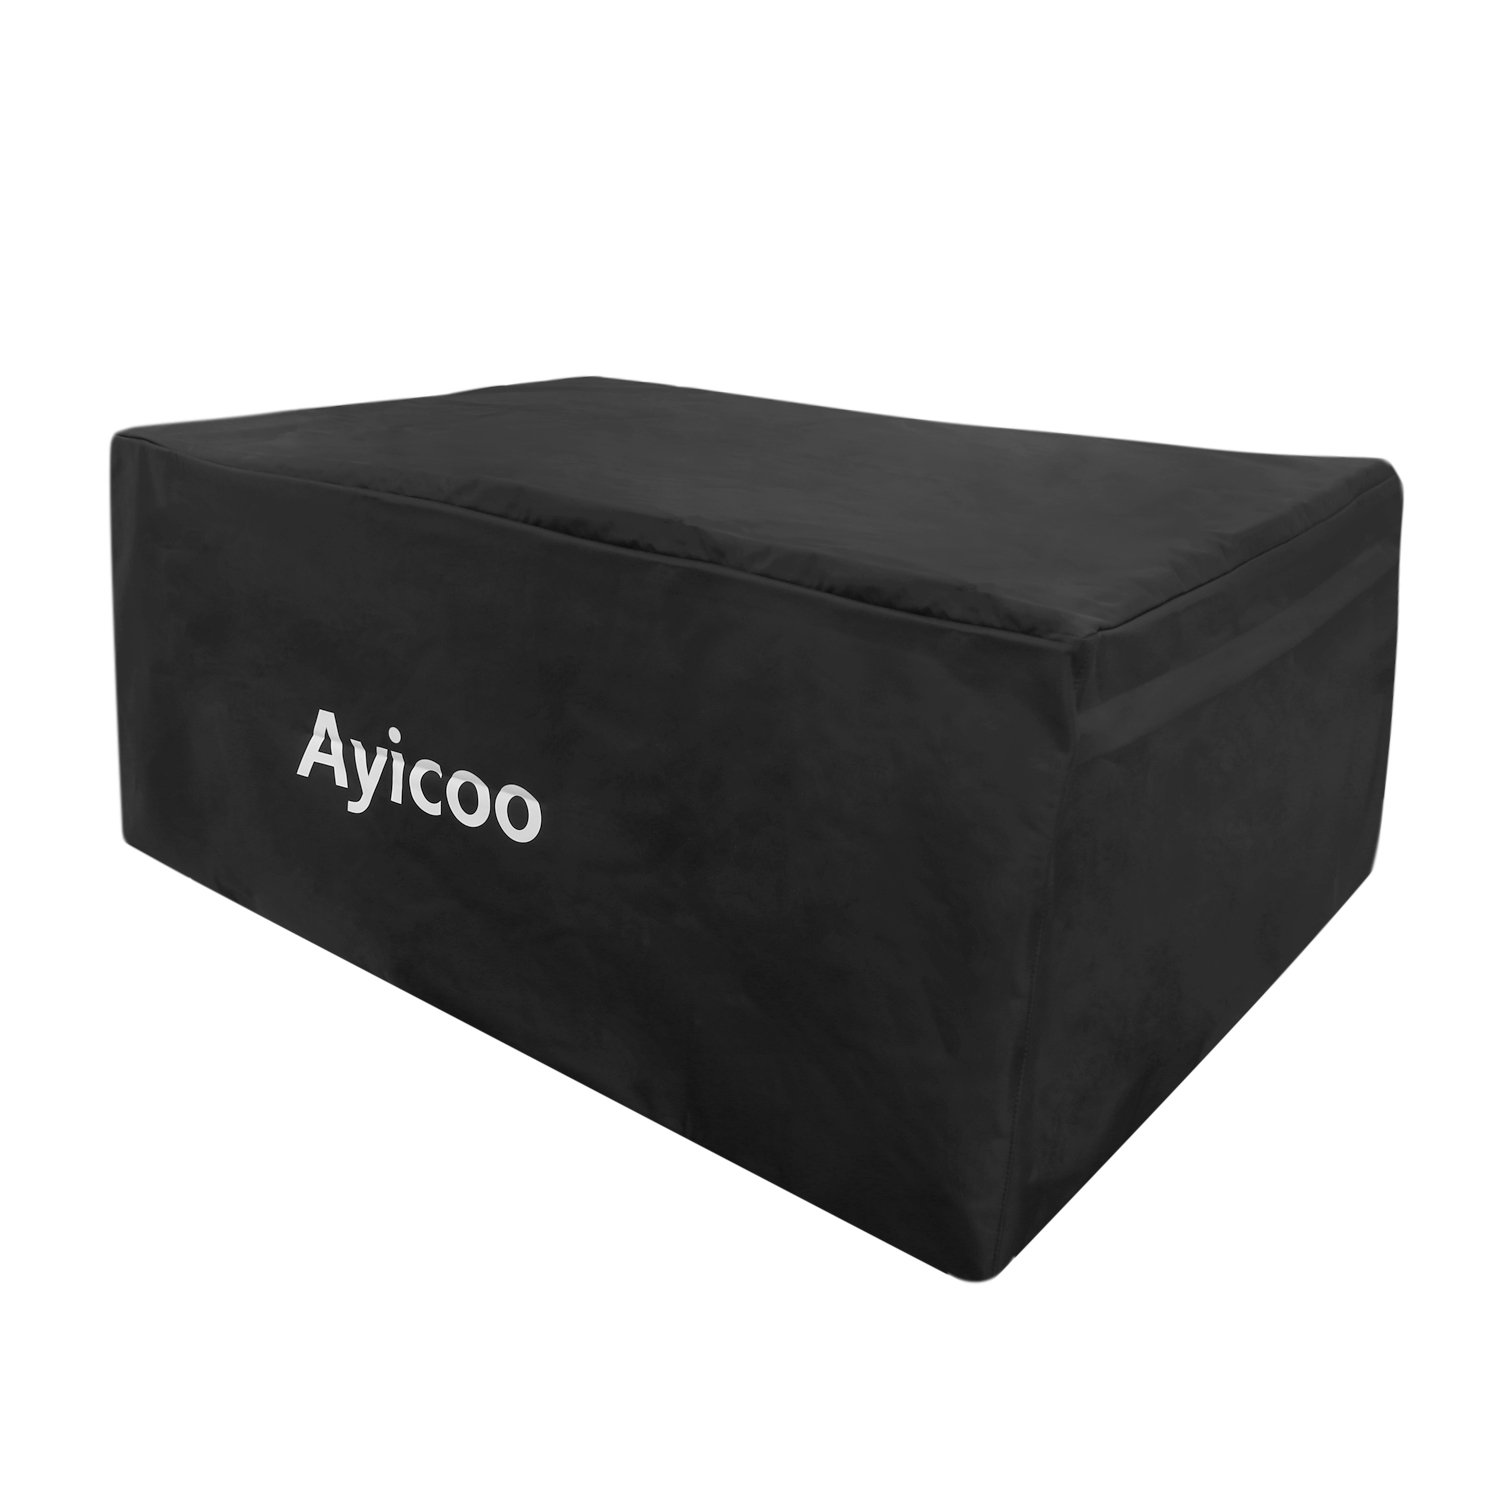 Ayicoo Car Rooftop Cargo Carrier Bag for SUV Jeep Truck, 21 Cubic Feet, Extra Large by Ayicoo